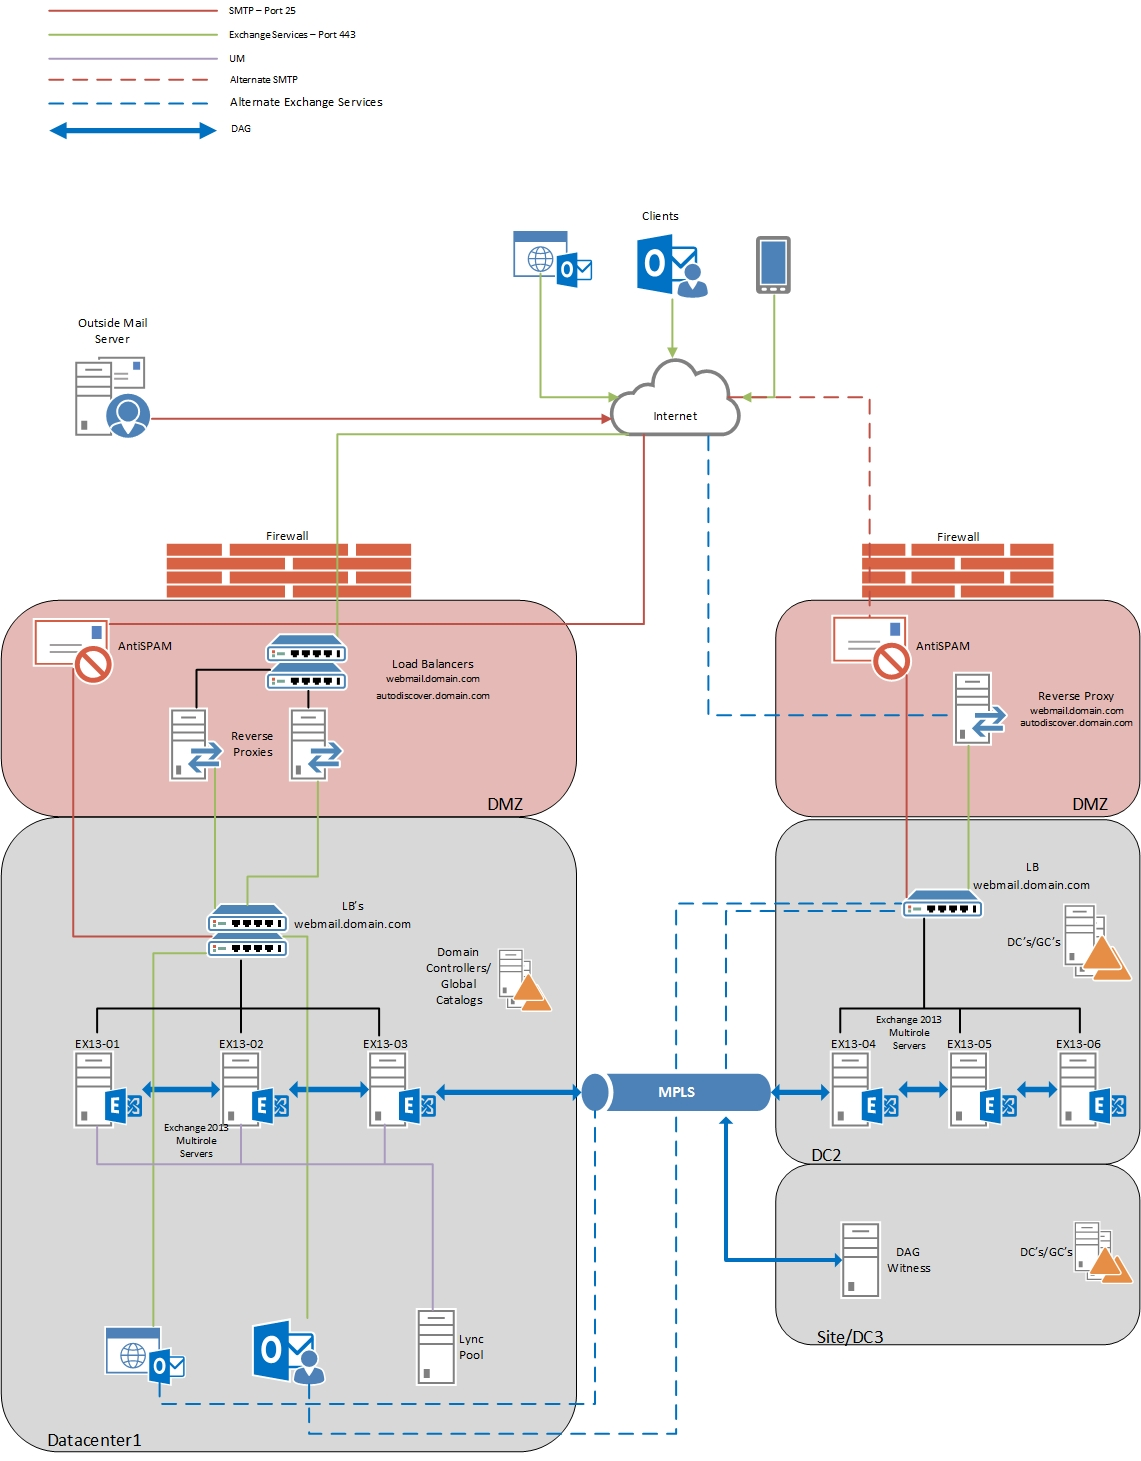 Exchange 2013 Planning Overview